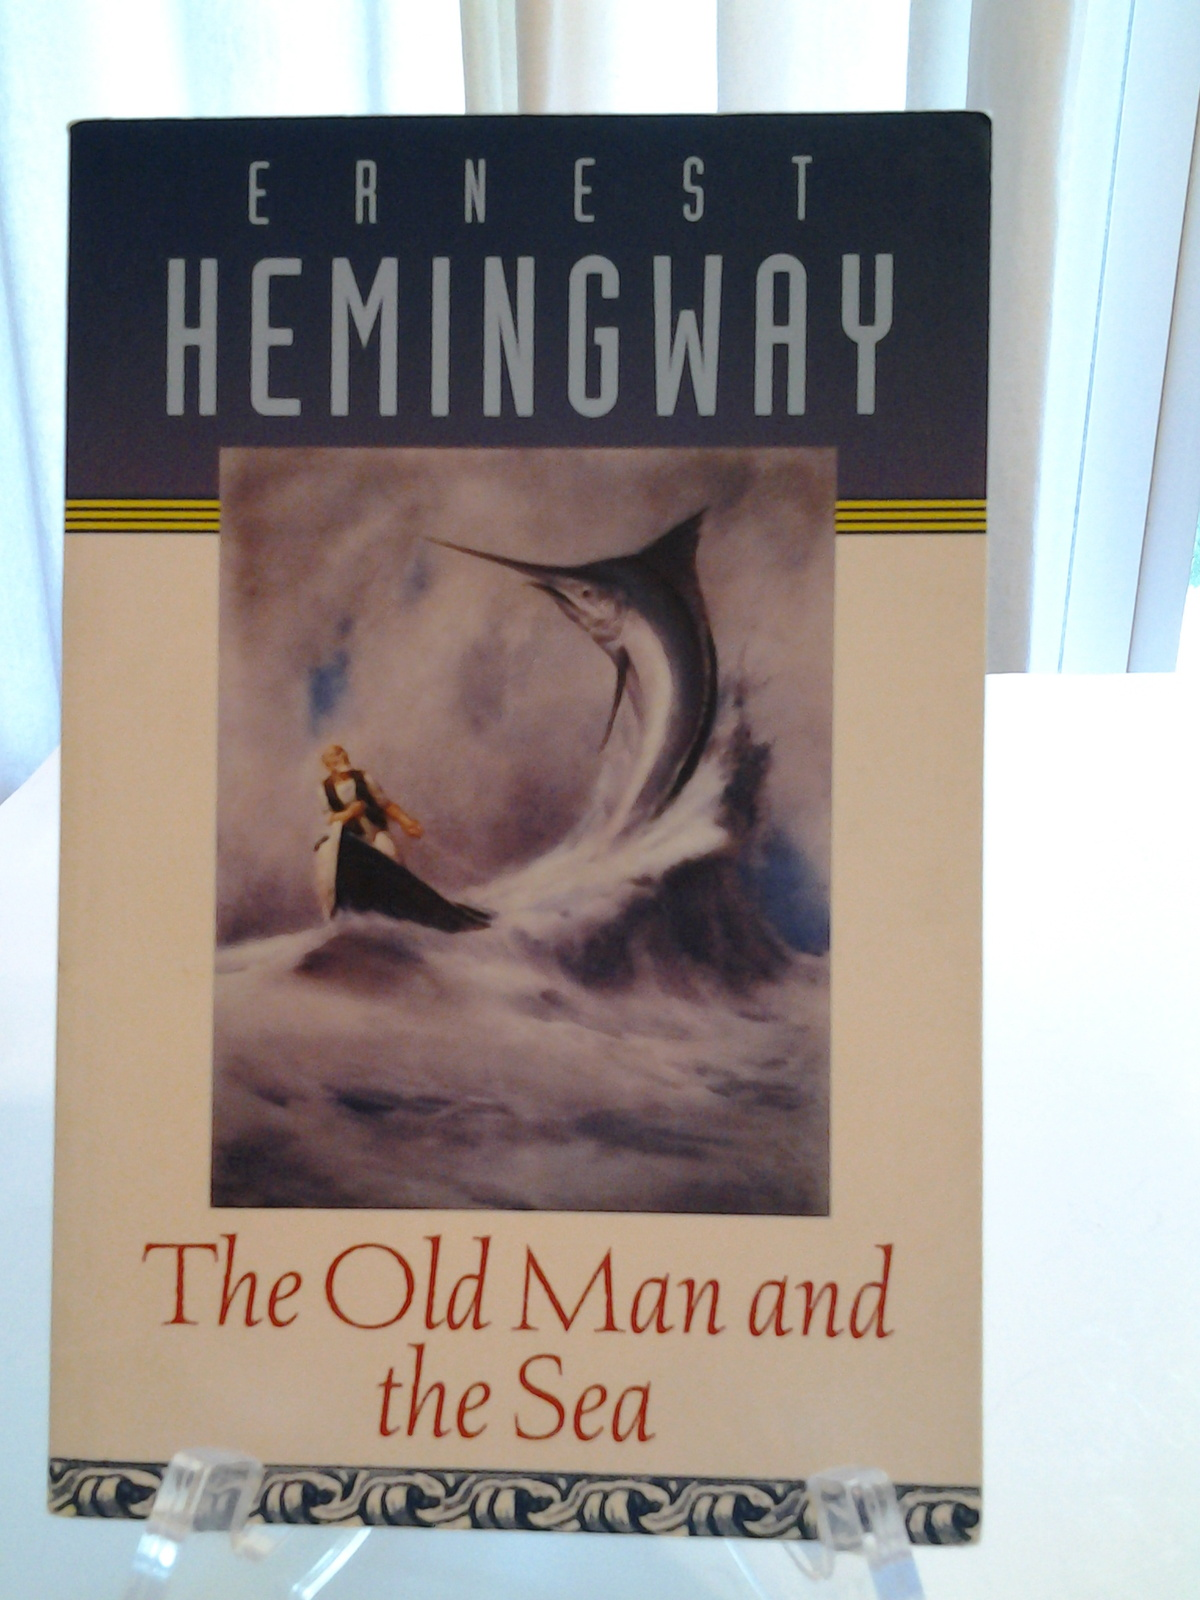 external nature and dignity in the old man and the sea by ernest hemingway Review of the book the old man and the sea, by ernest hemingway of eating him from the manner of his behaviour and his great dignity but the old man.